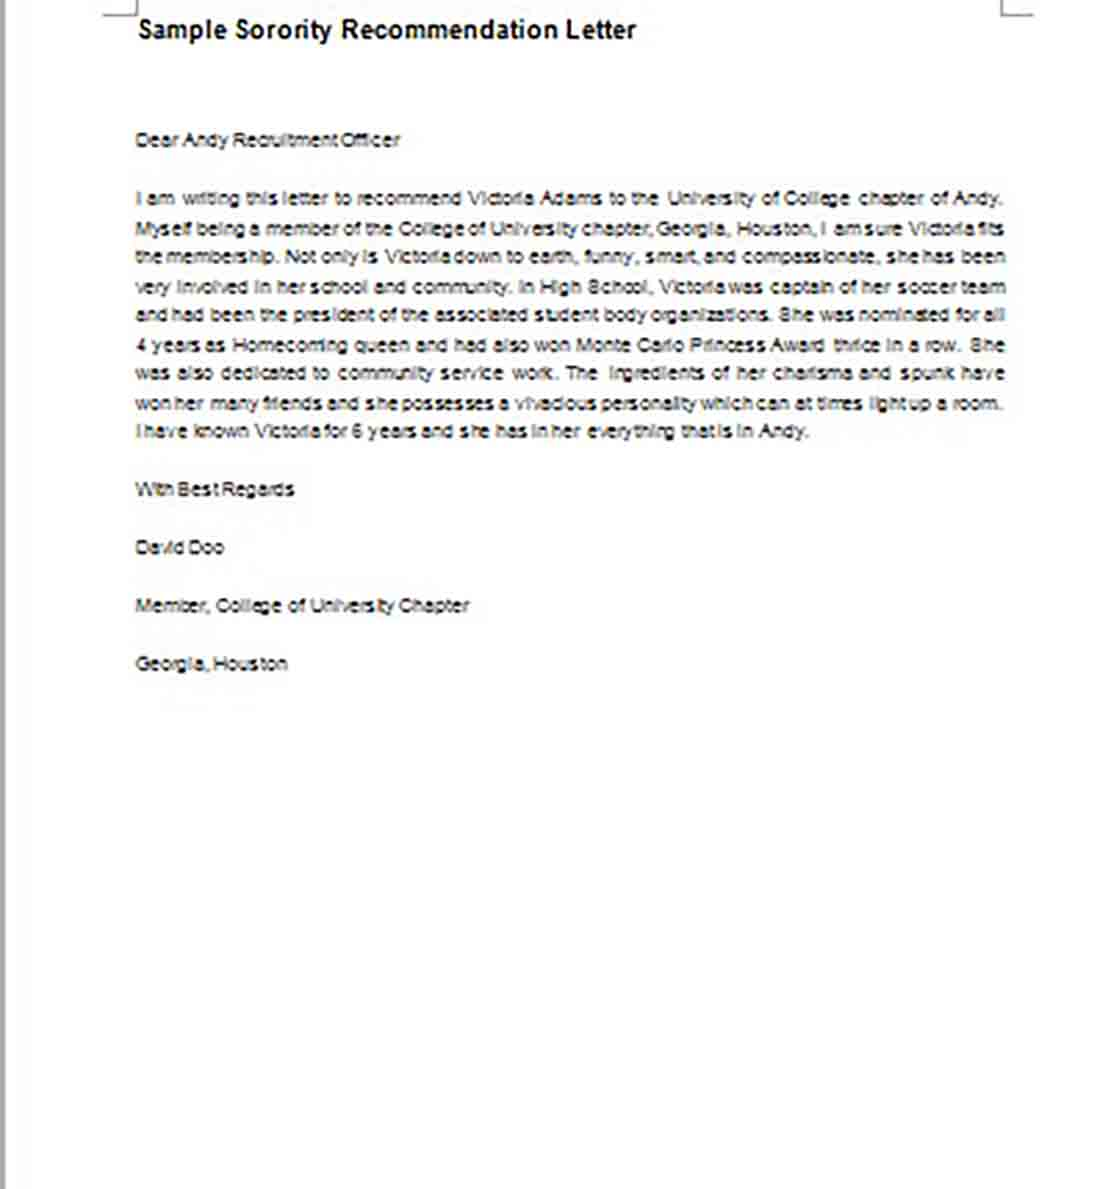 Sorority Recommendation Letter templates MS Word